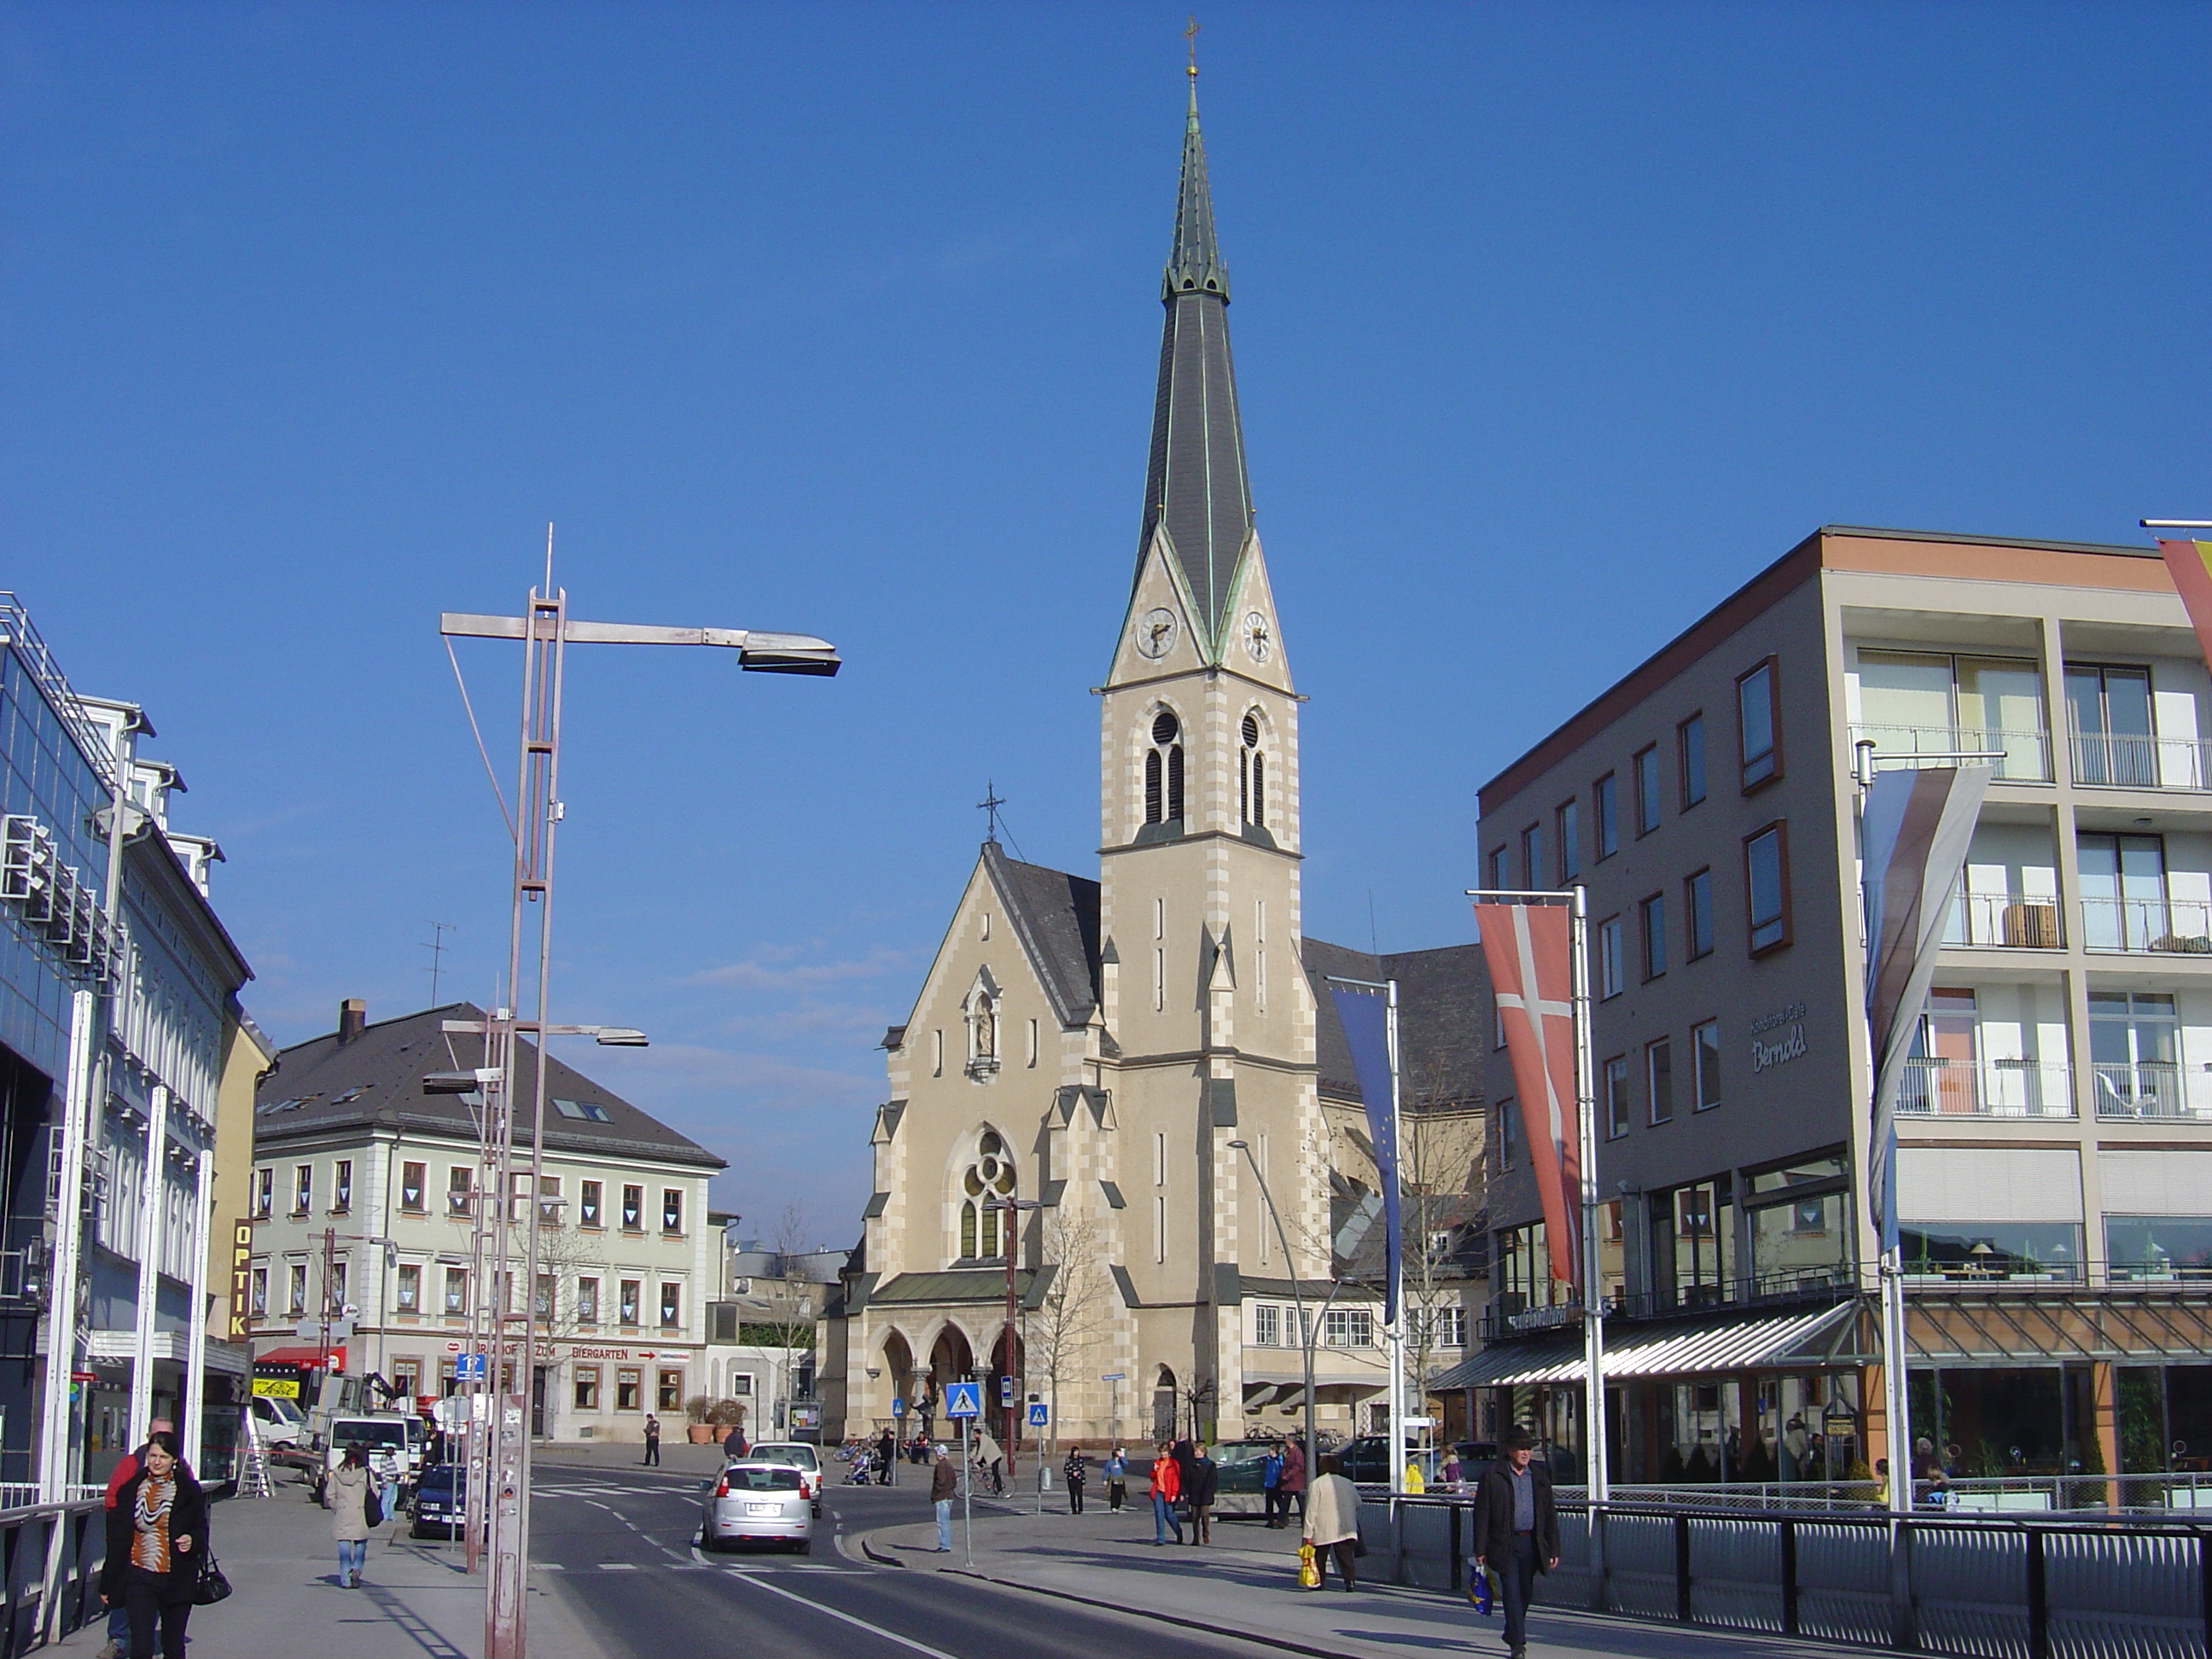 villach chat rooms Things to do in villach, austria: see tripadvisor's 2,447 traveler reviews and photos of villach tourist attractions find what to do today, this weekend, or in april.